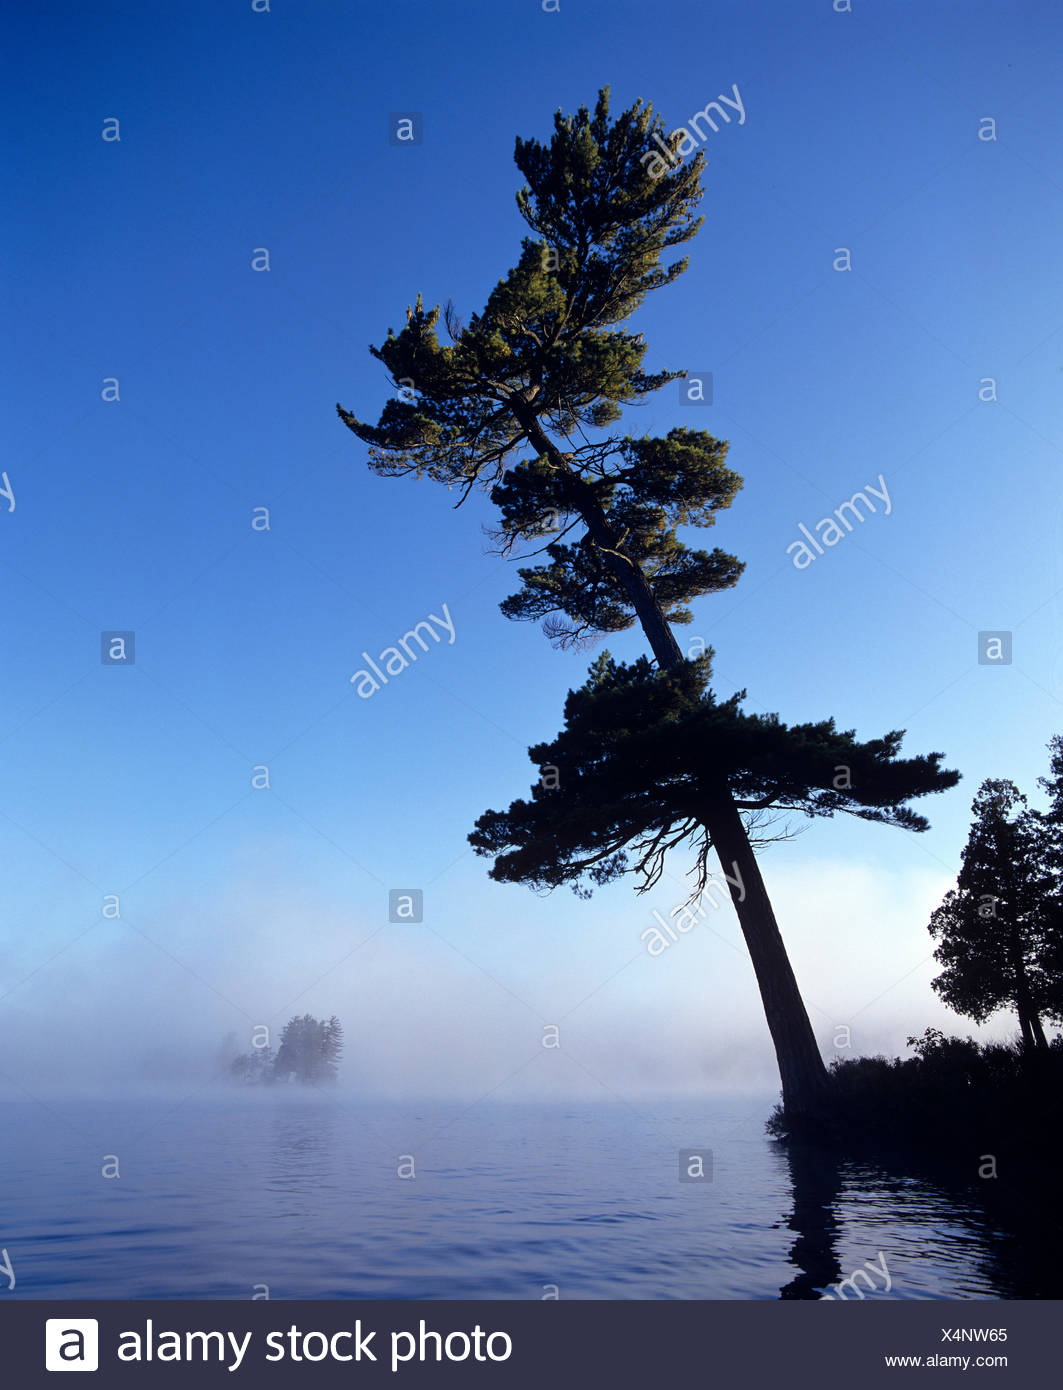 White Pine leans over South Tea Lake, on cool late summer morning, Algonquin Park, Ontario, Canada - Stock Image